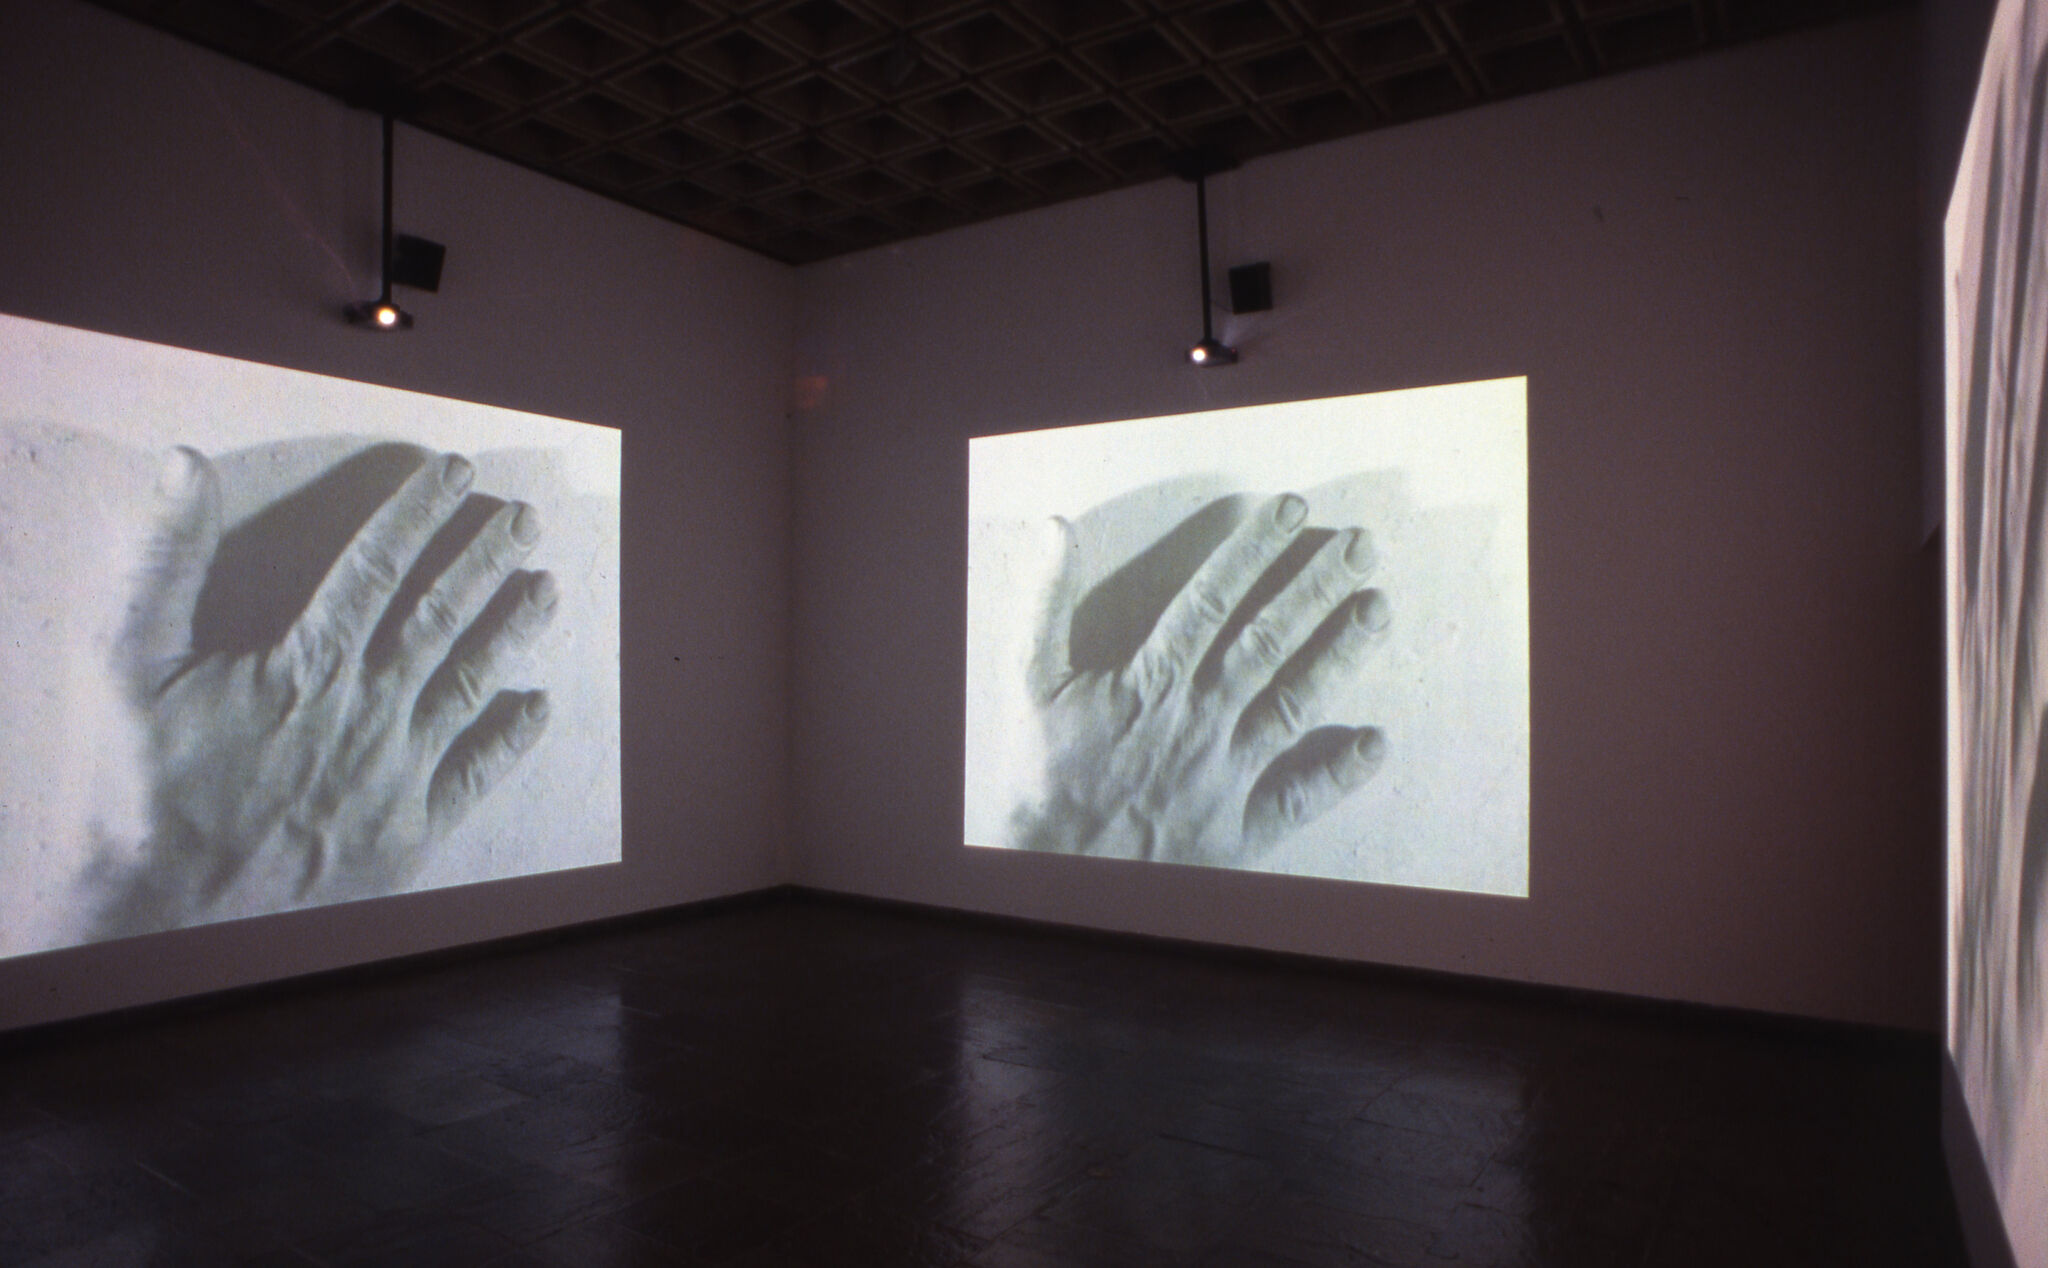 Black and white images of a hand projected on the walls of a gallery.